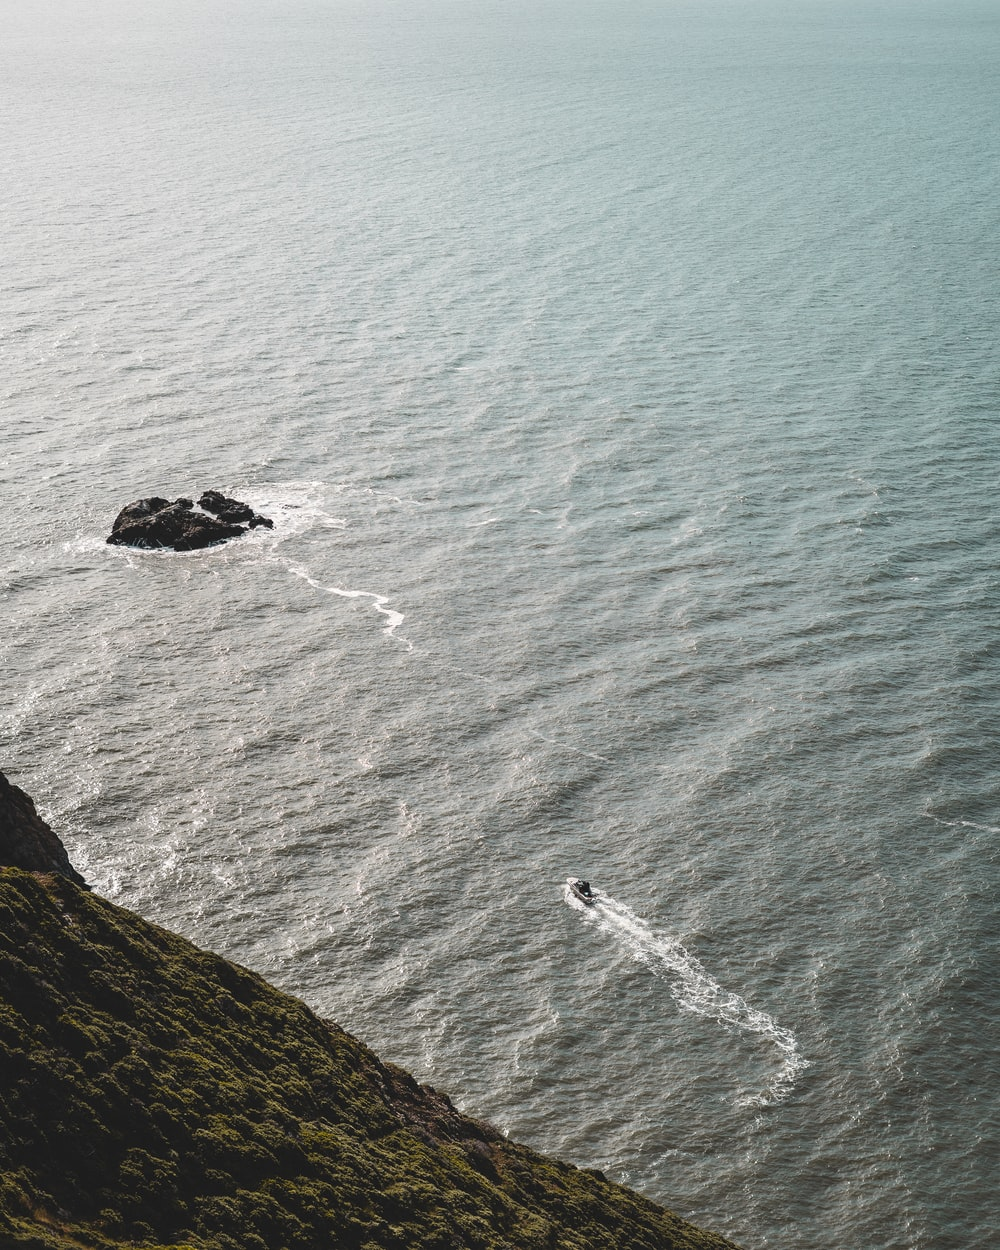 aerial view of ocean waves crashing on rock formation during daytime